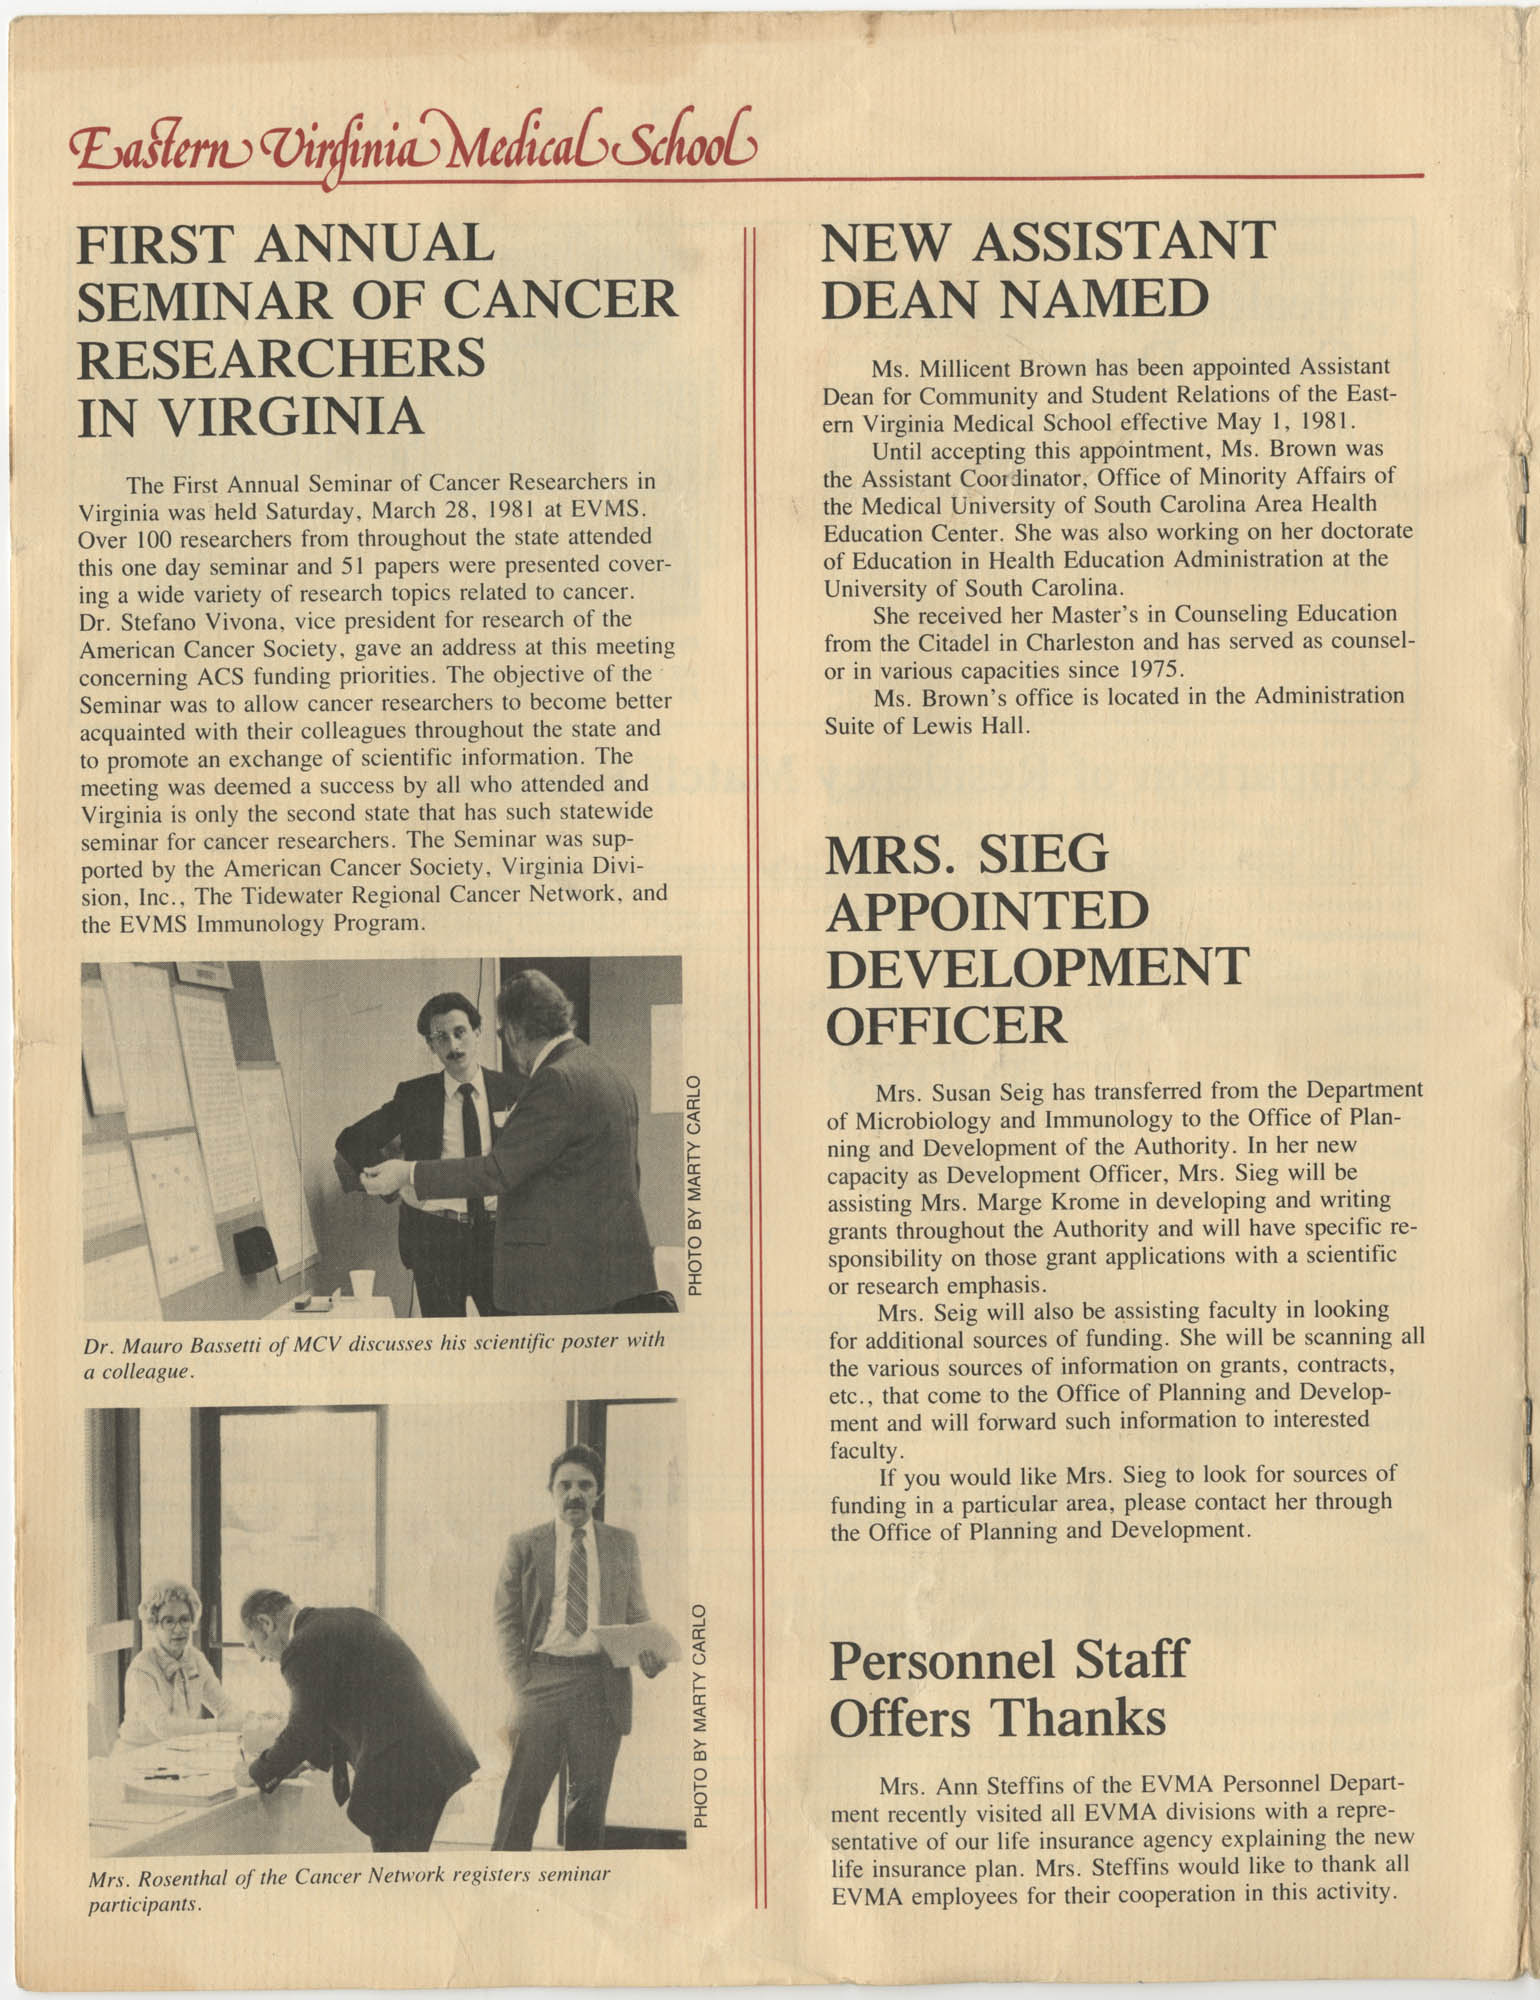 Eastern Virginia Medical School, Dean's Newsletter, Volume 4, Number 5, Page 6